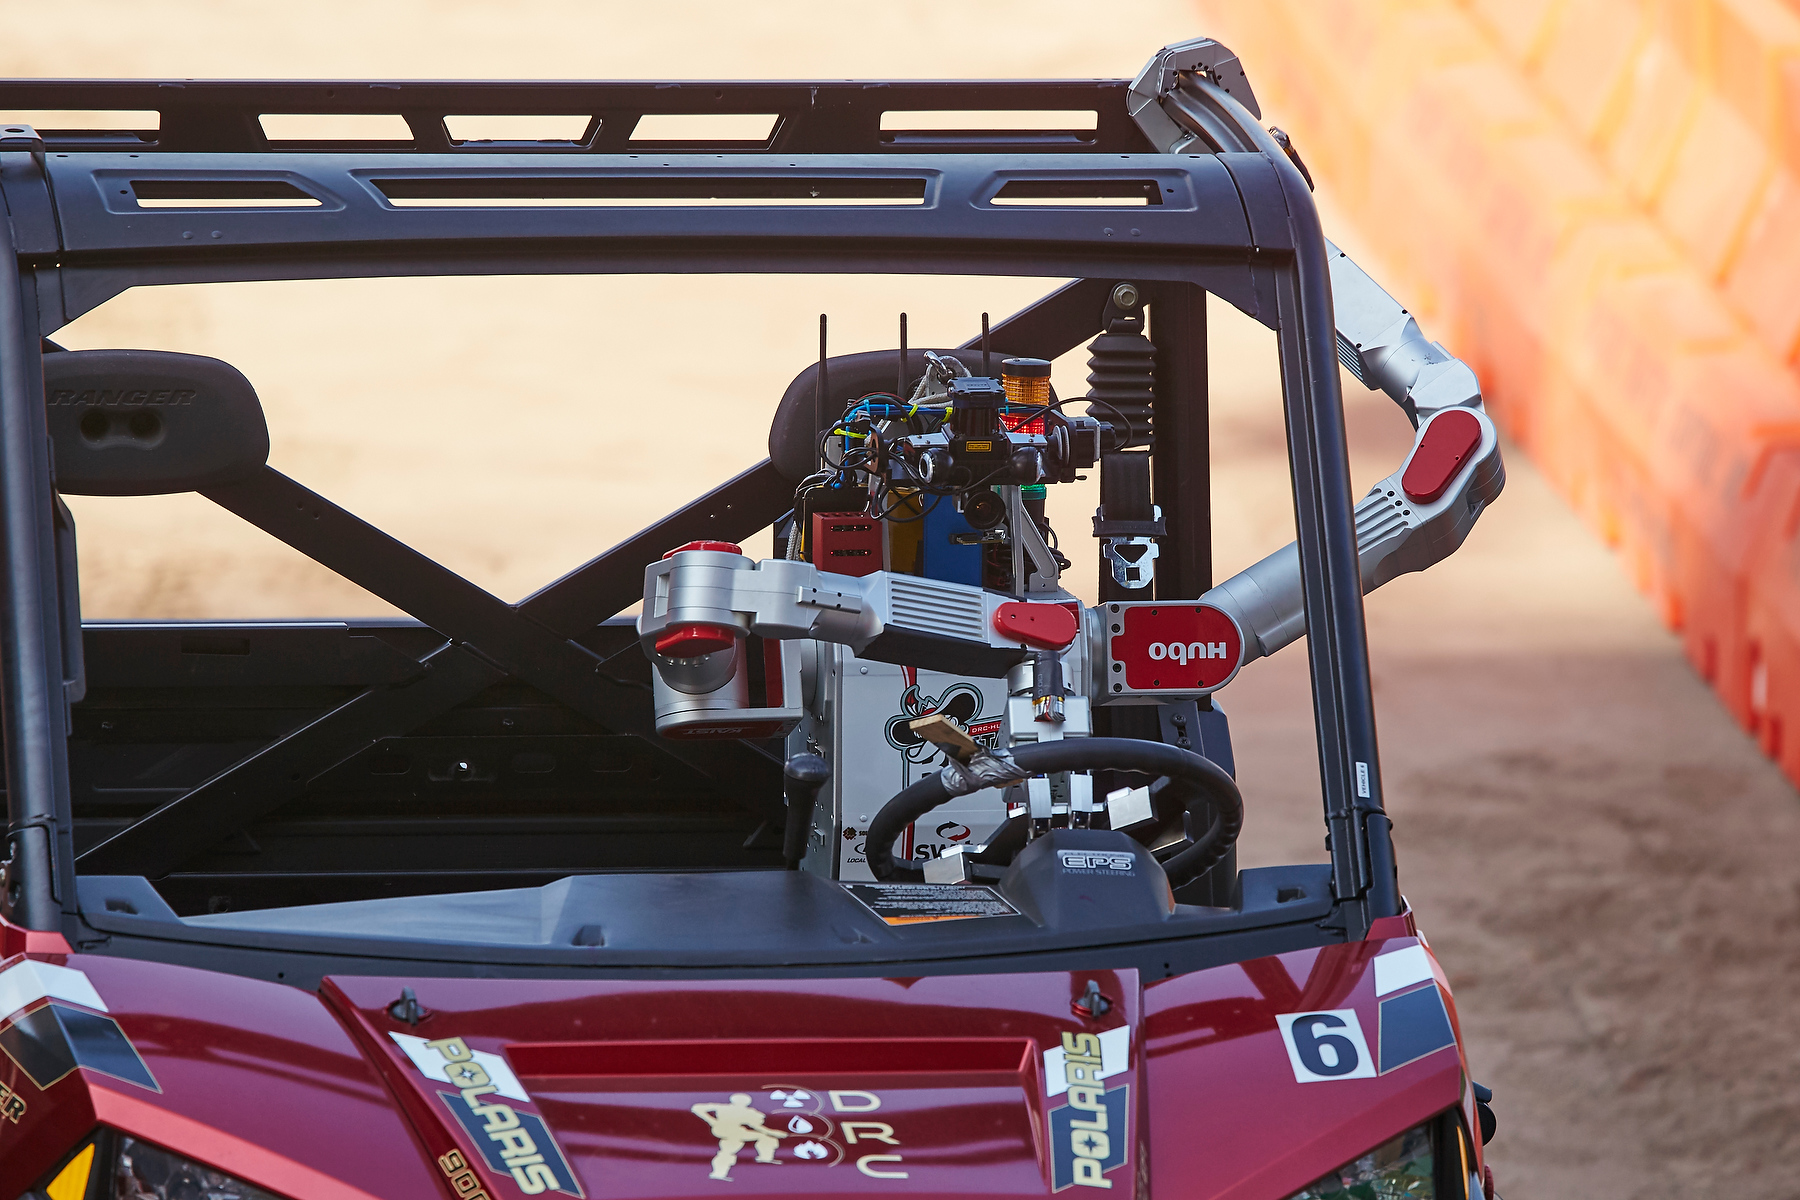 UNLV DRC-Hubo humanoid robot seated in vehicle